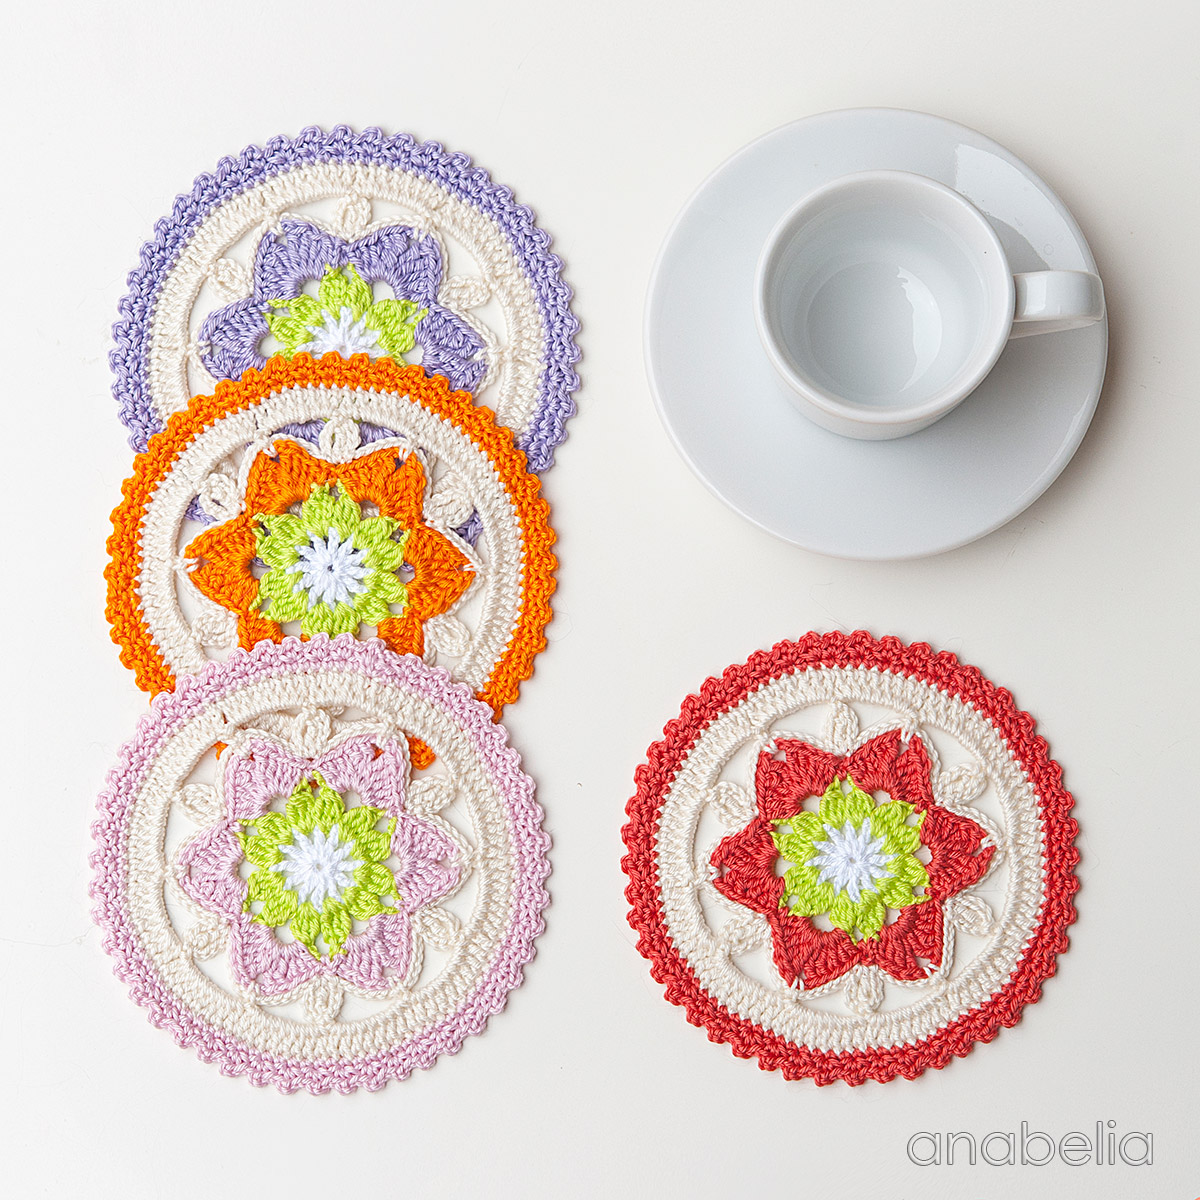 Daffodil crochet coasters pattern, new color schemes | Anabelia ...